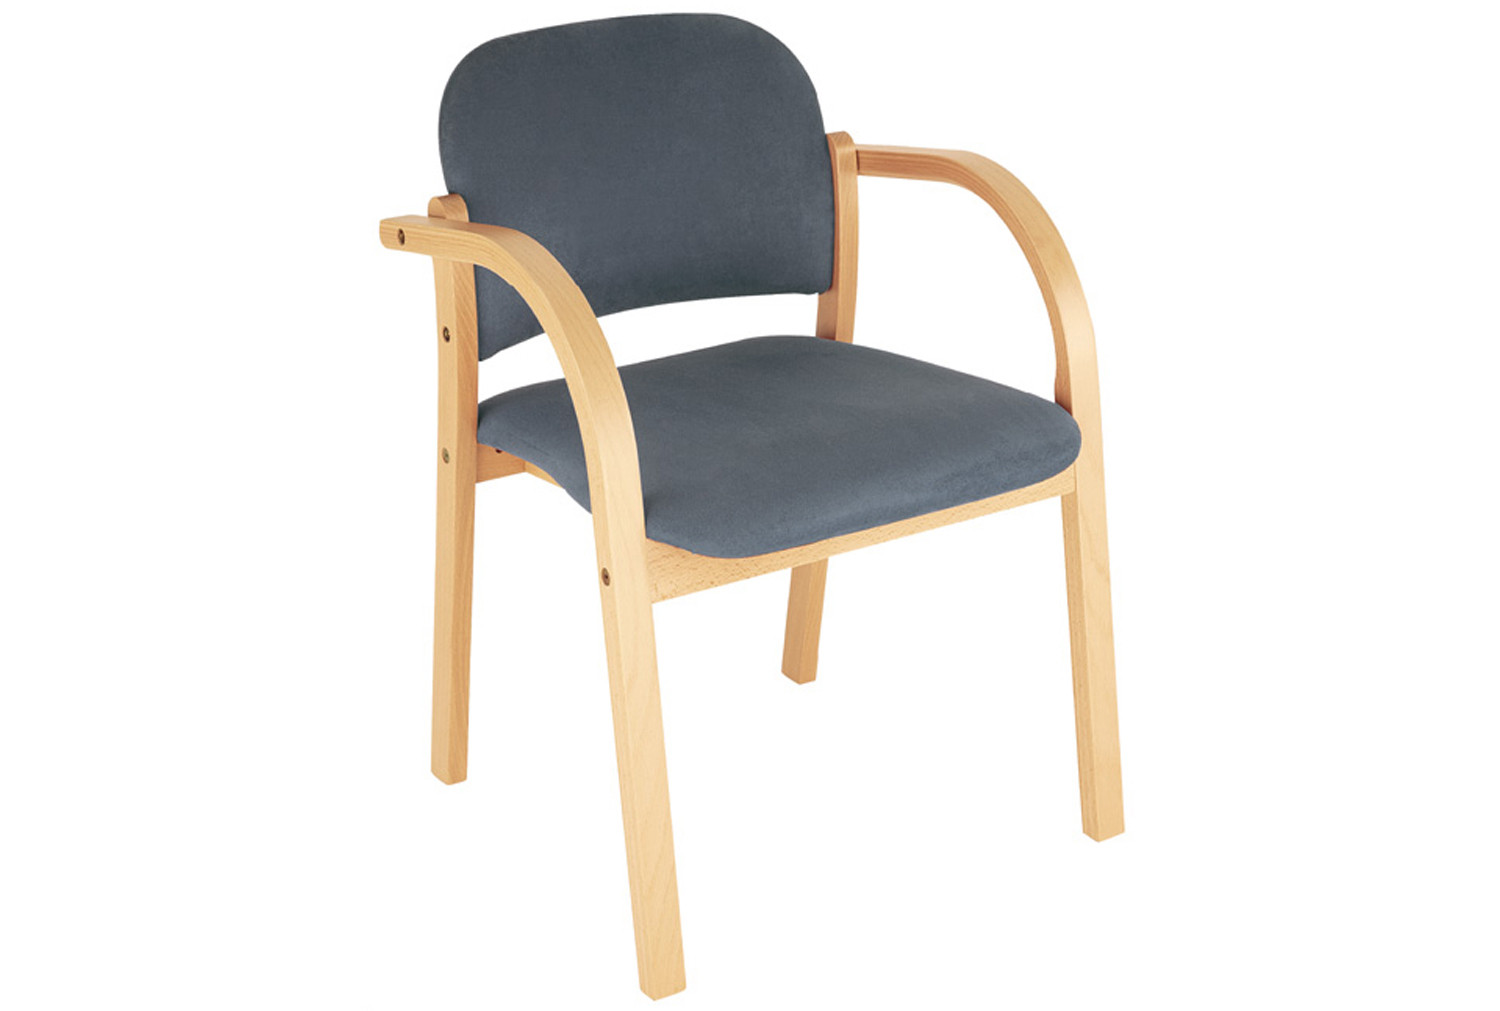 wooden chair frames for upholstery uk white wicker rental malva frame reception armchair furniture at work